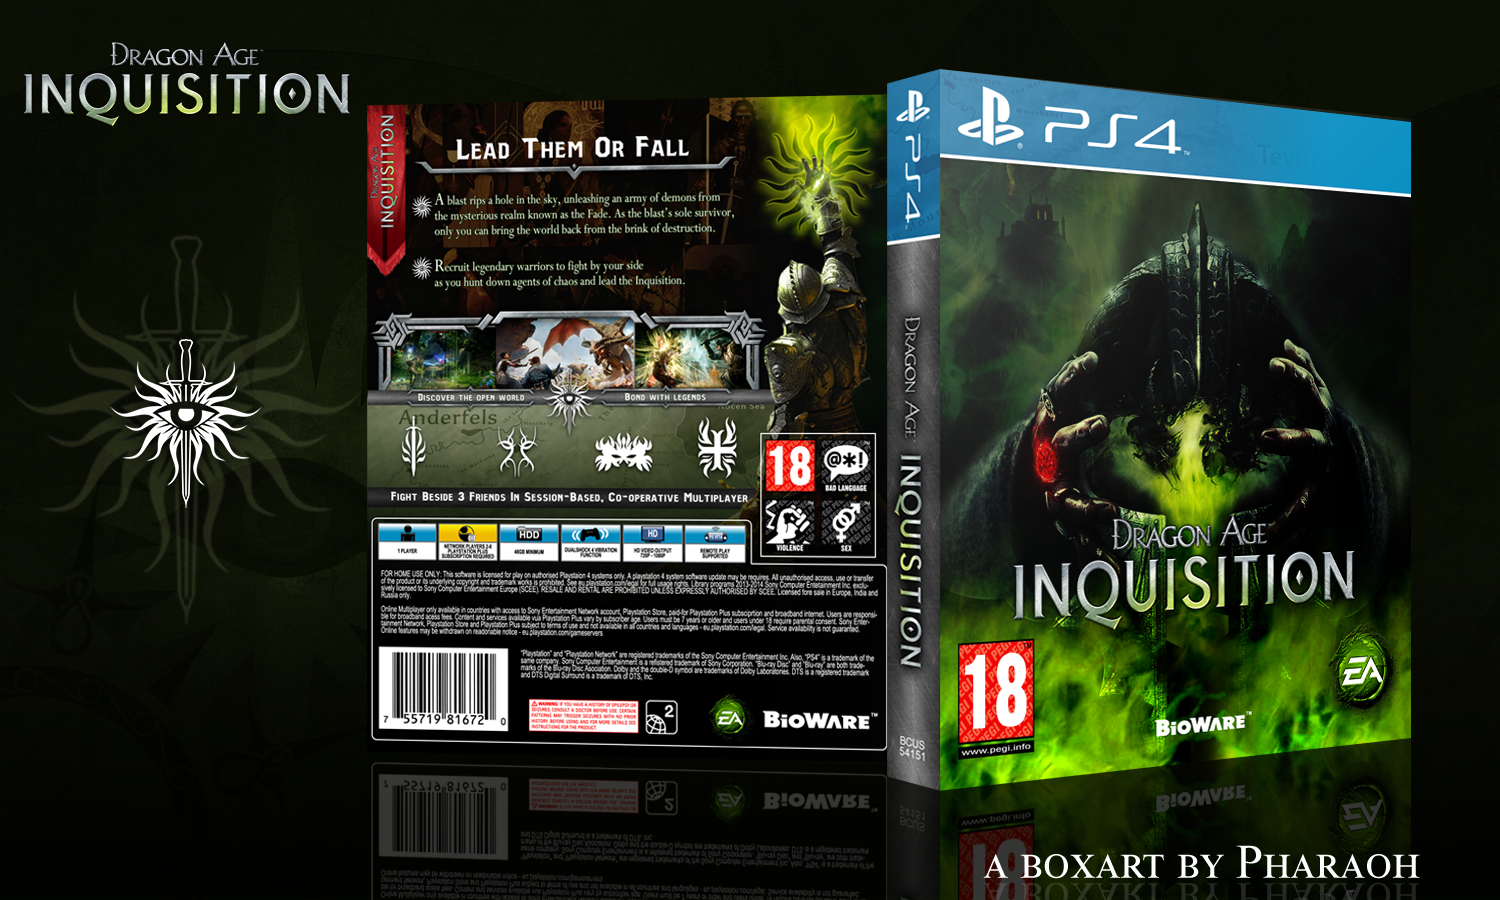 Dragon Age: Inquisition box cover